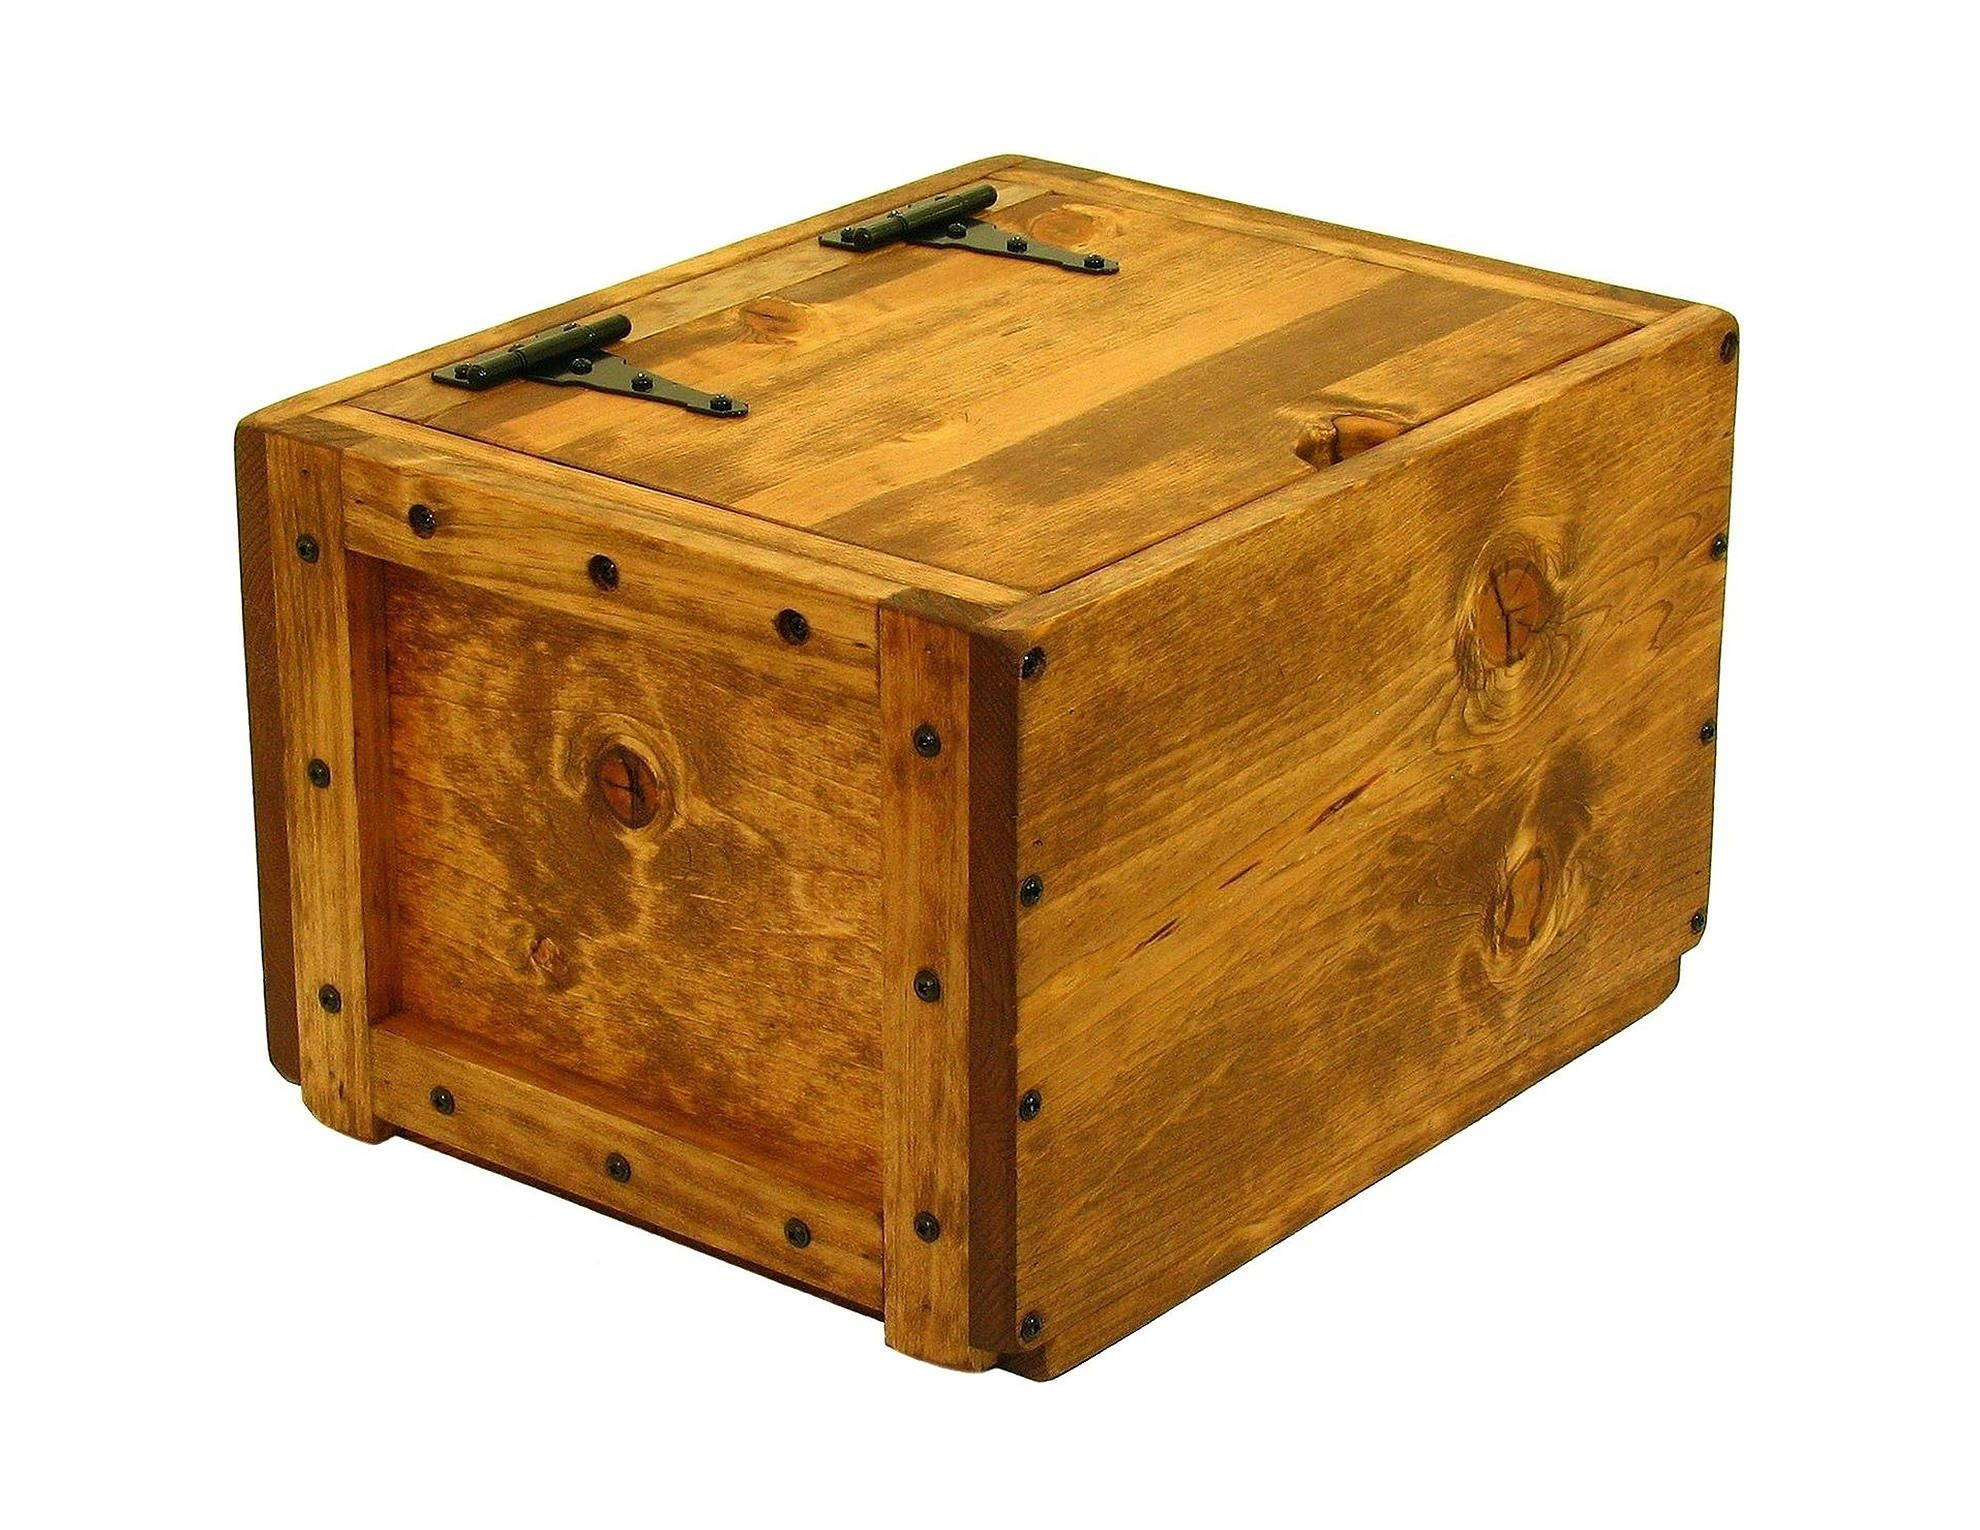 Lidded Chest Small Trunk With Lid Lidded Wooden Box Wood Crate With Hinged Lid Perfect For Easy Access Storage Of Blankets Diy Wood Box Wood Diy Wood Boxes